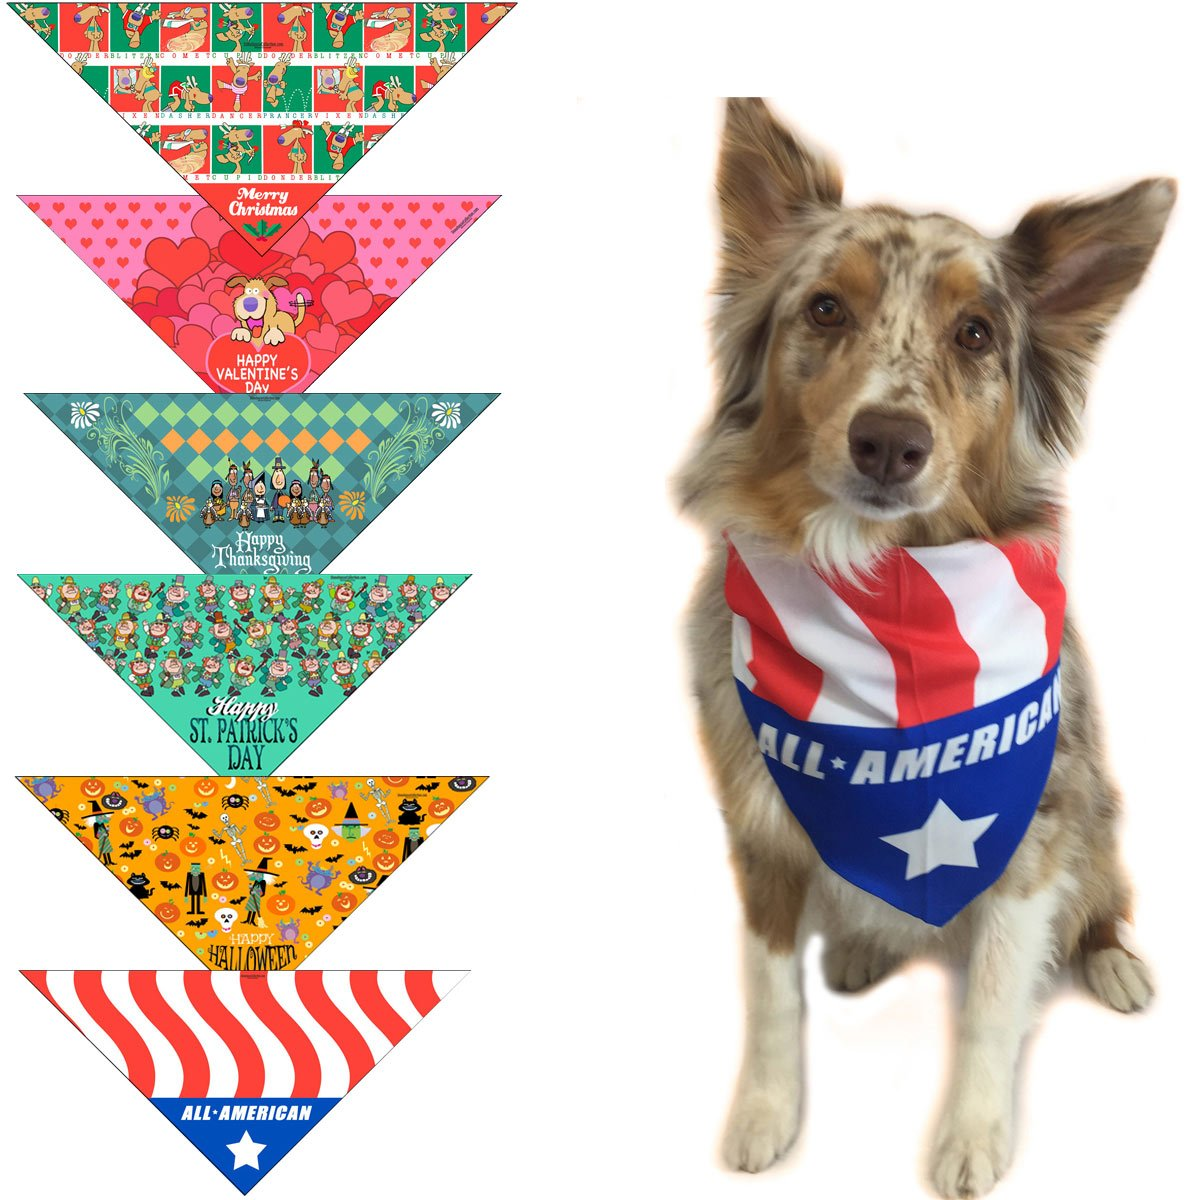 Stonehouse Collection 6 pc Holiday Dog Bandana for Small Dogs - Set of 6 - Christmas, Halloween, Thanksgiving, Valentine's Day, St. Patricks Day, Patriotic by Stonehouse Collection